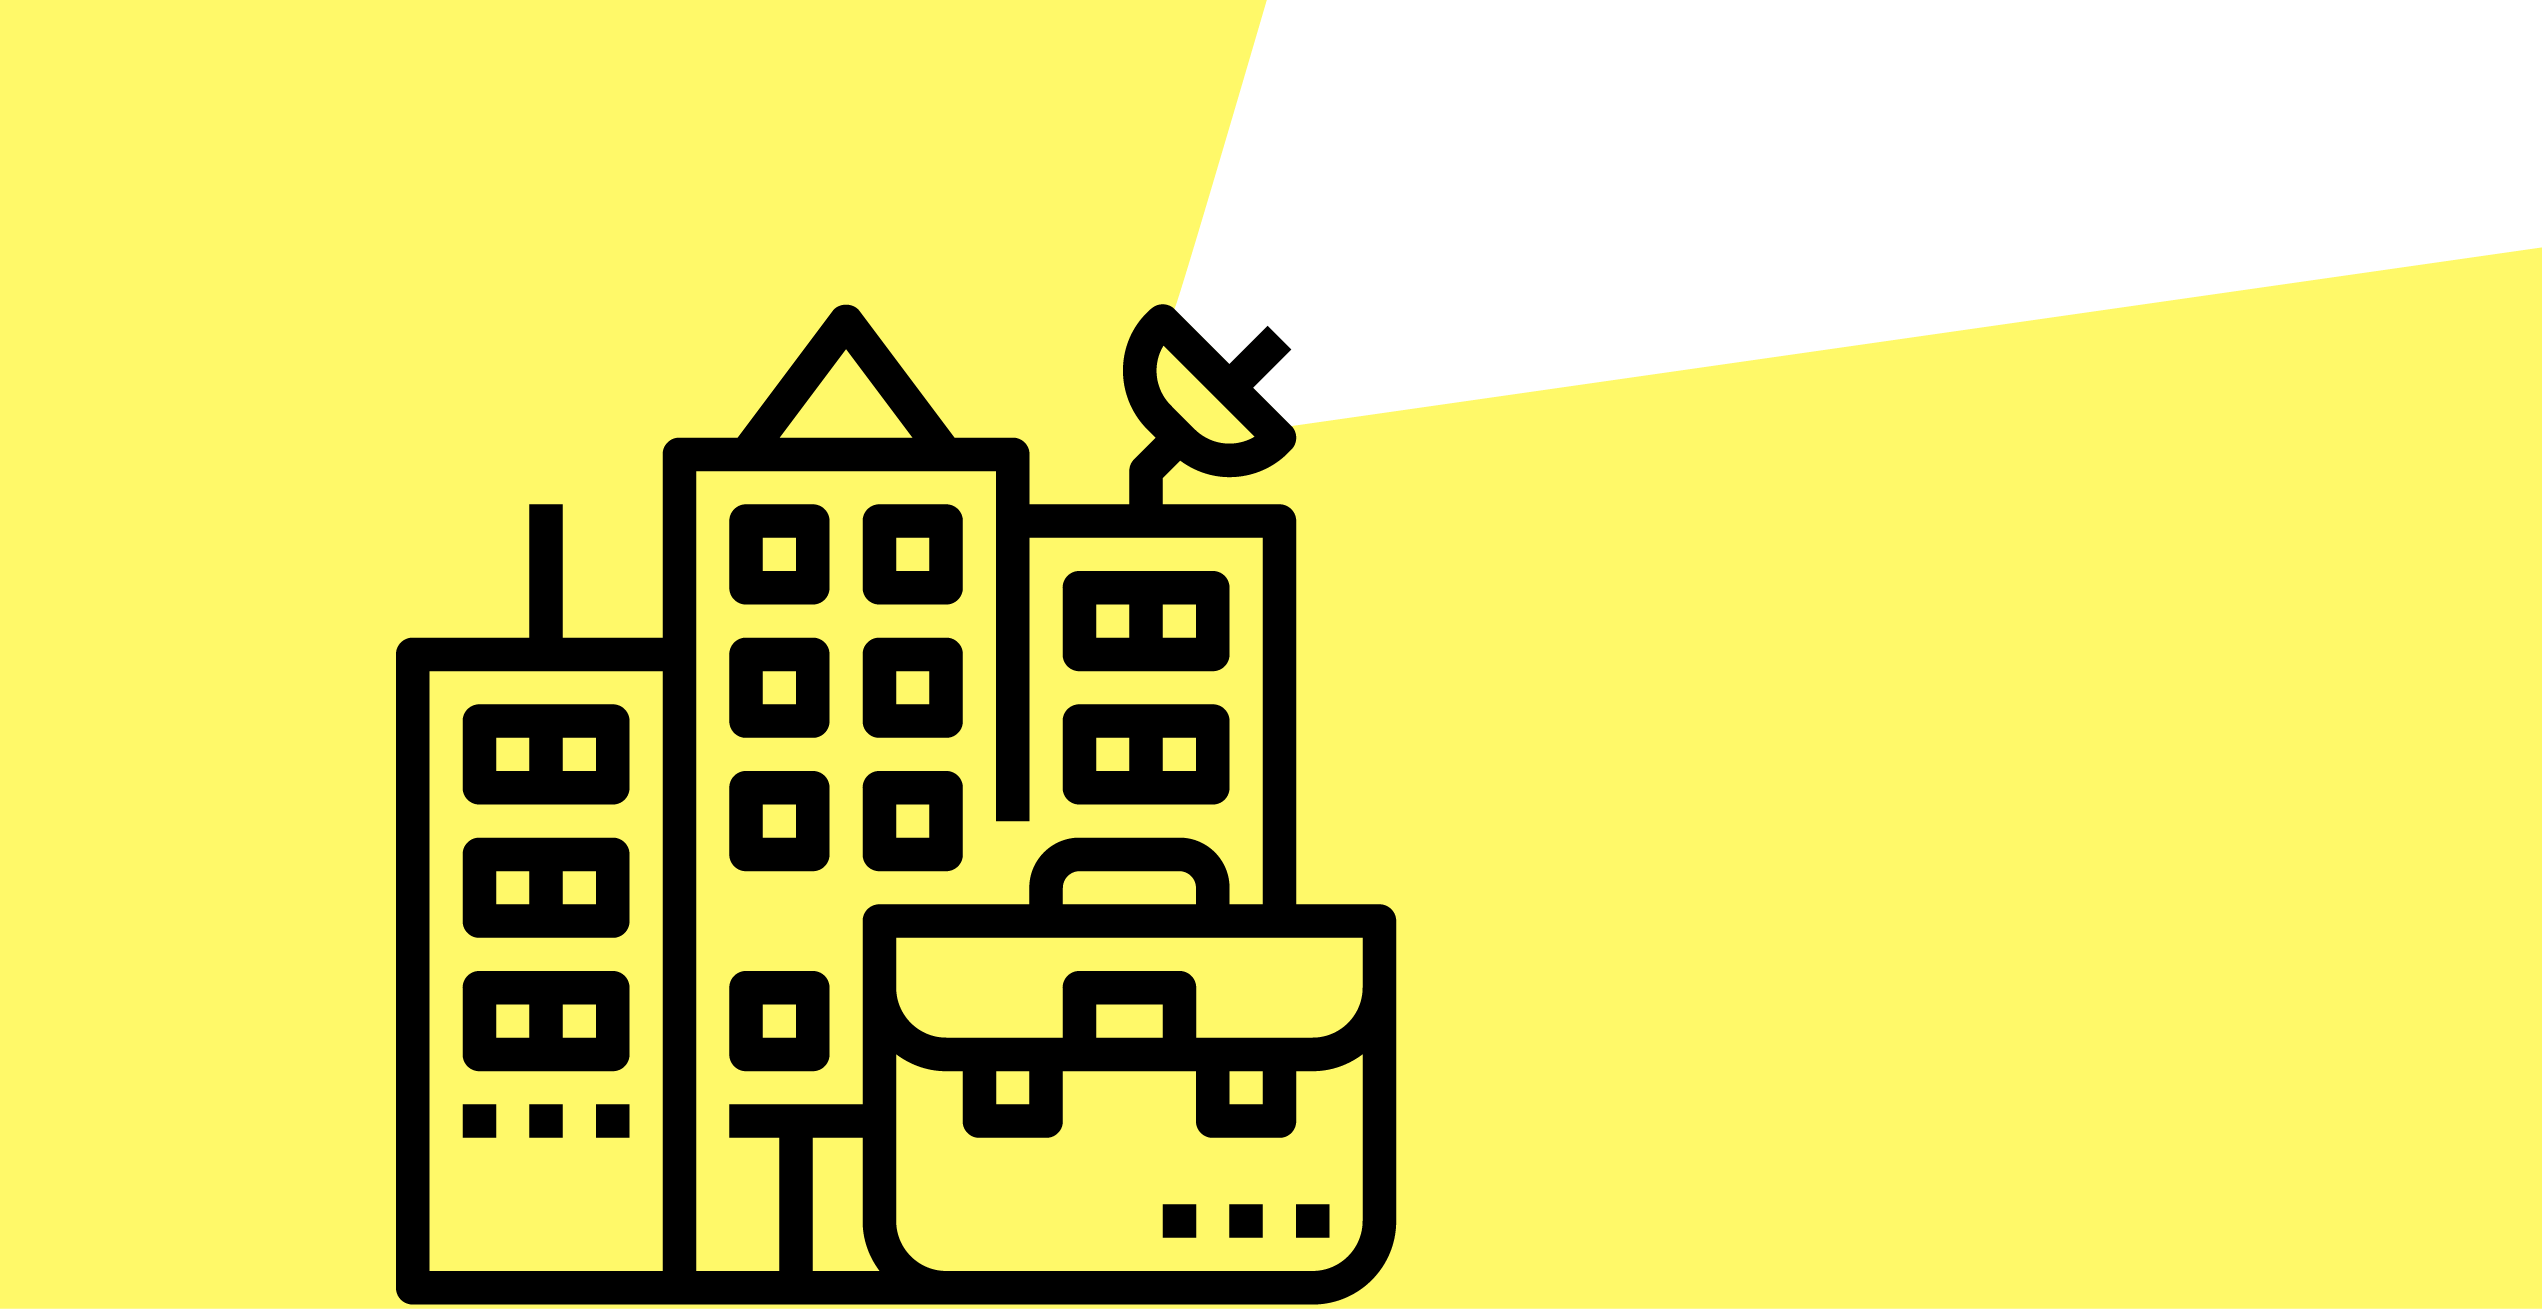 An illustration of a building with a large briefcase in front, on a yellow background